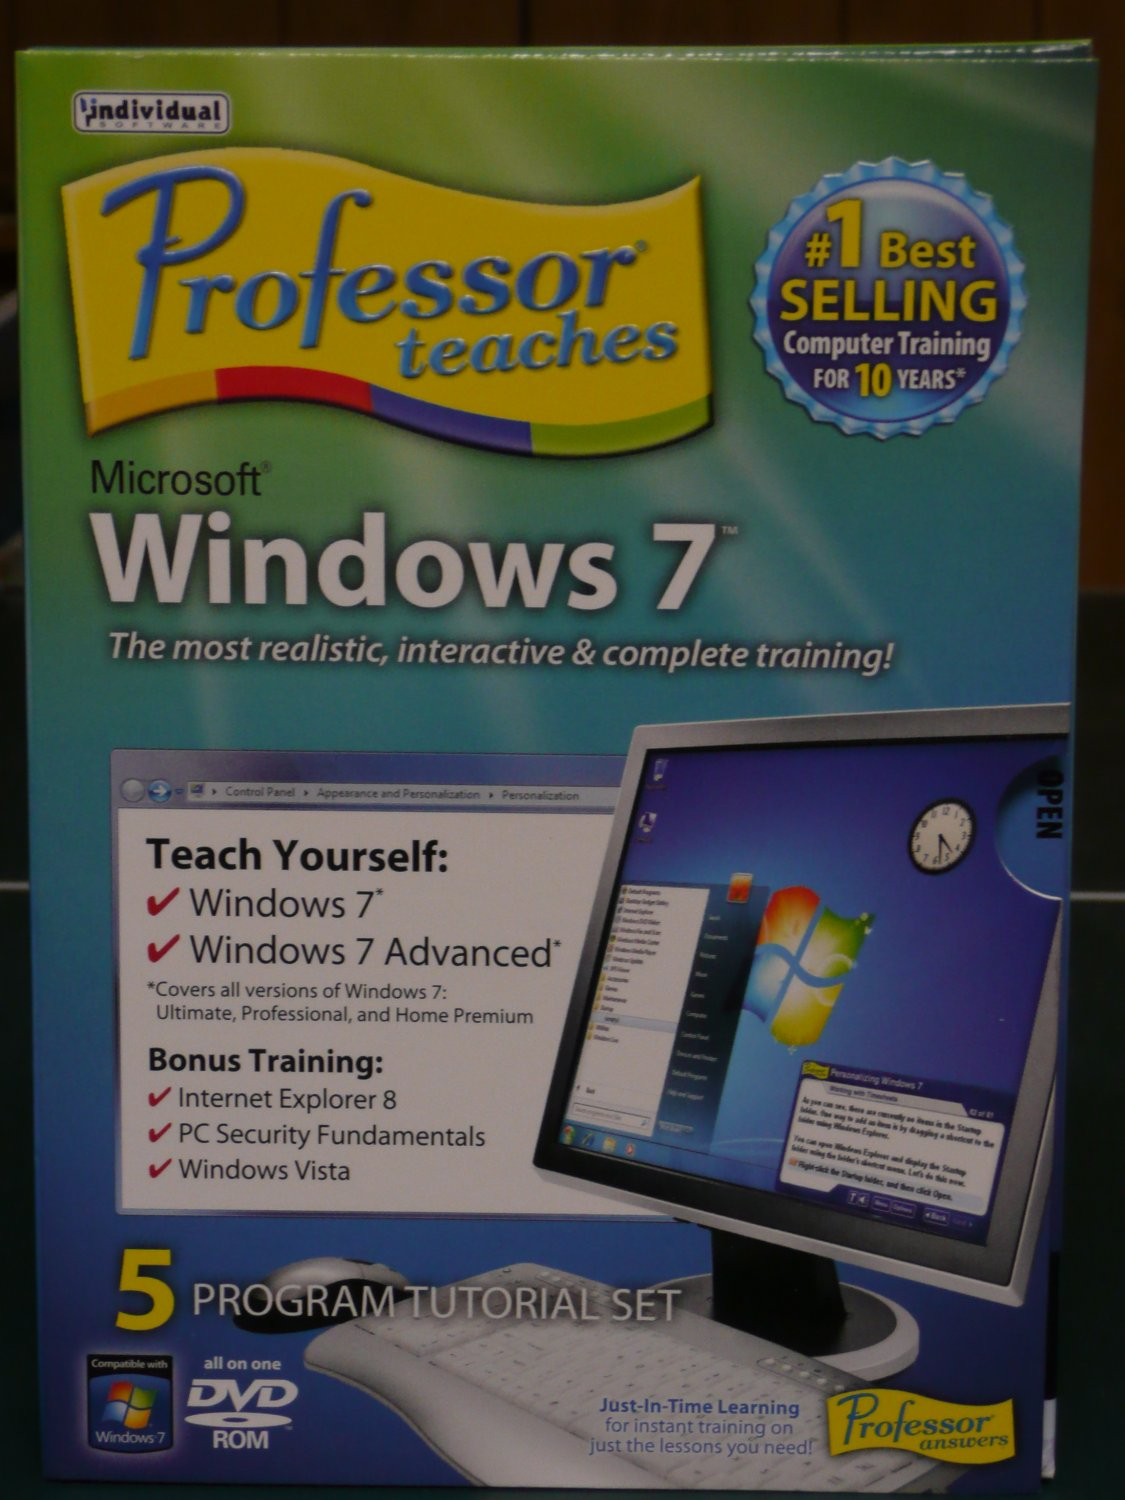 Professor teaches windows 7 | individual software.